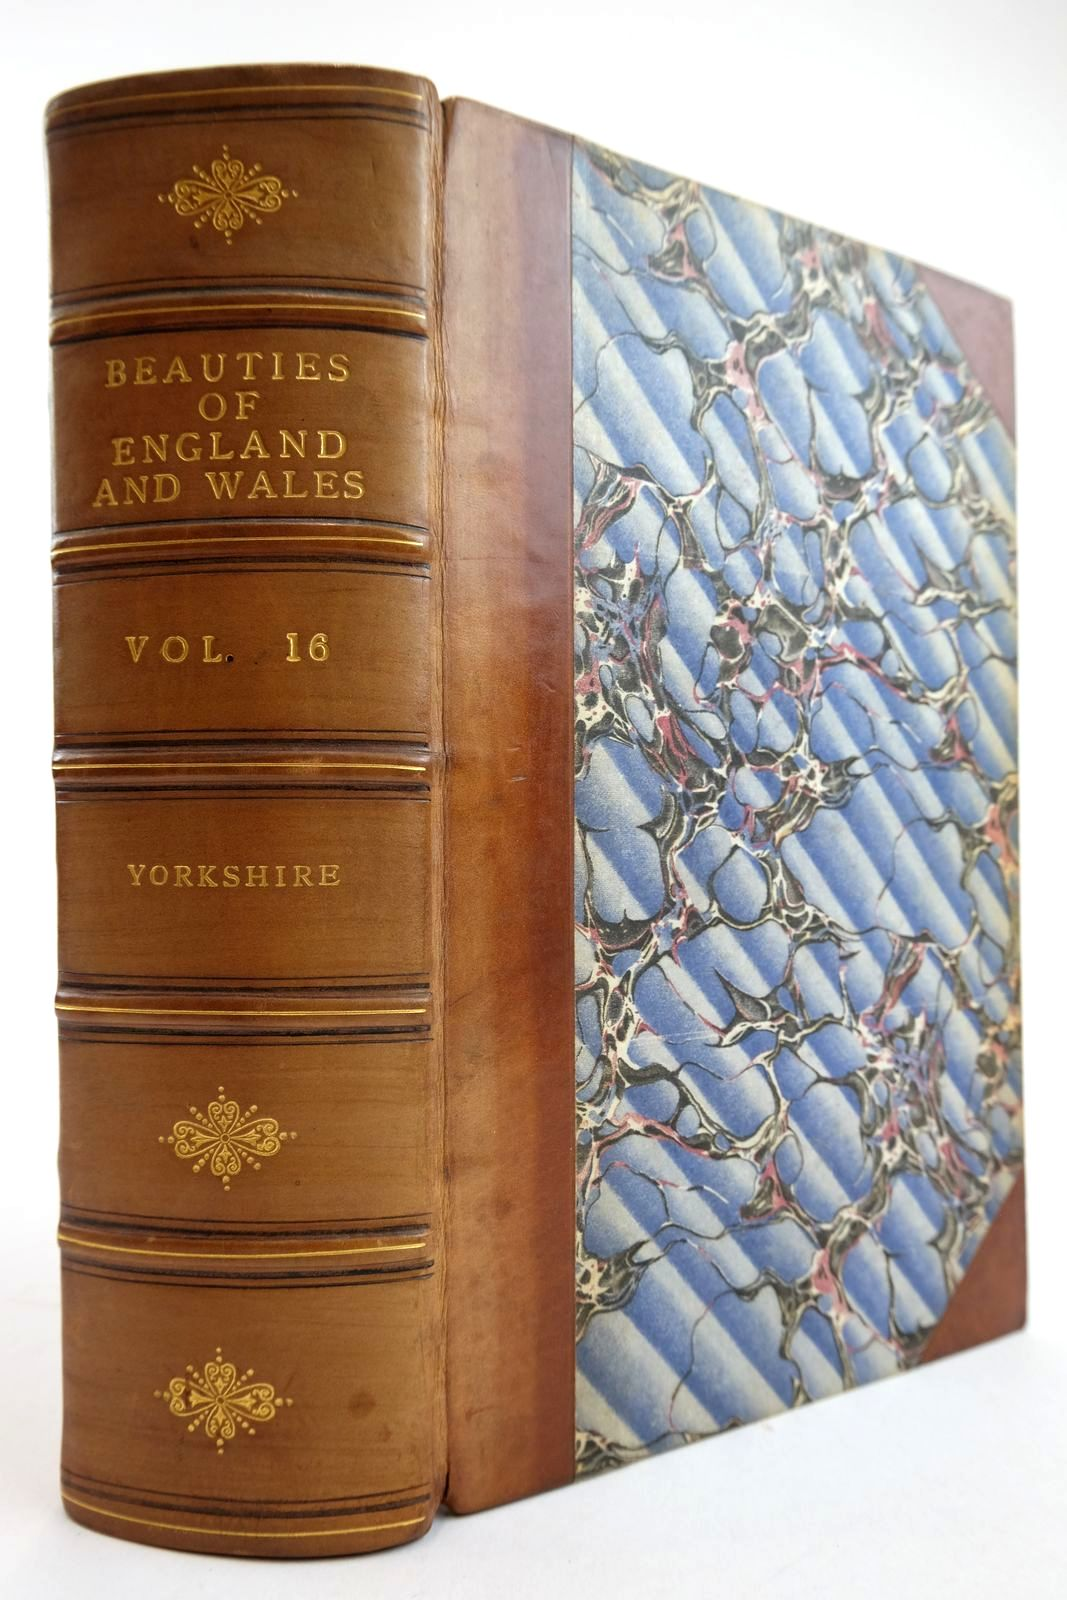 Photo of THE BEAUTIES OF ENGLAND AND WALES VOL. XVI: YORKSHIRE- Stock Number: 2134135